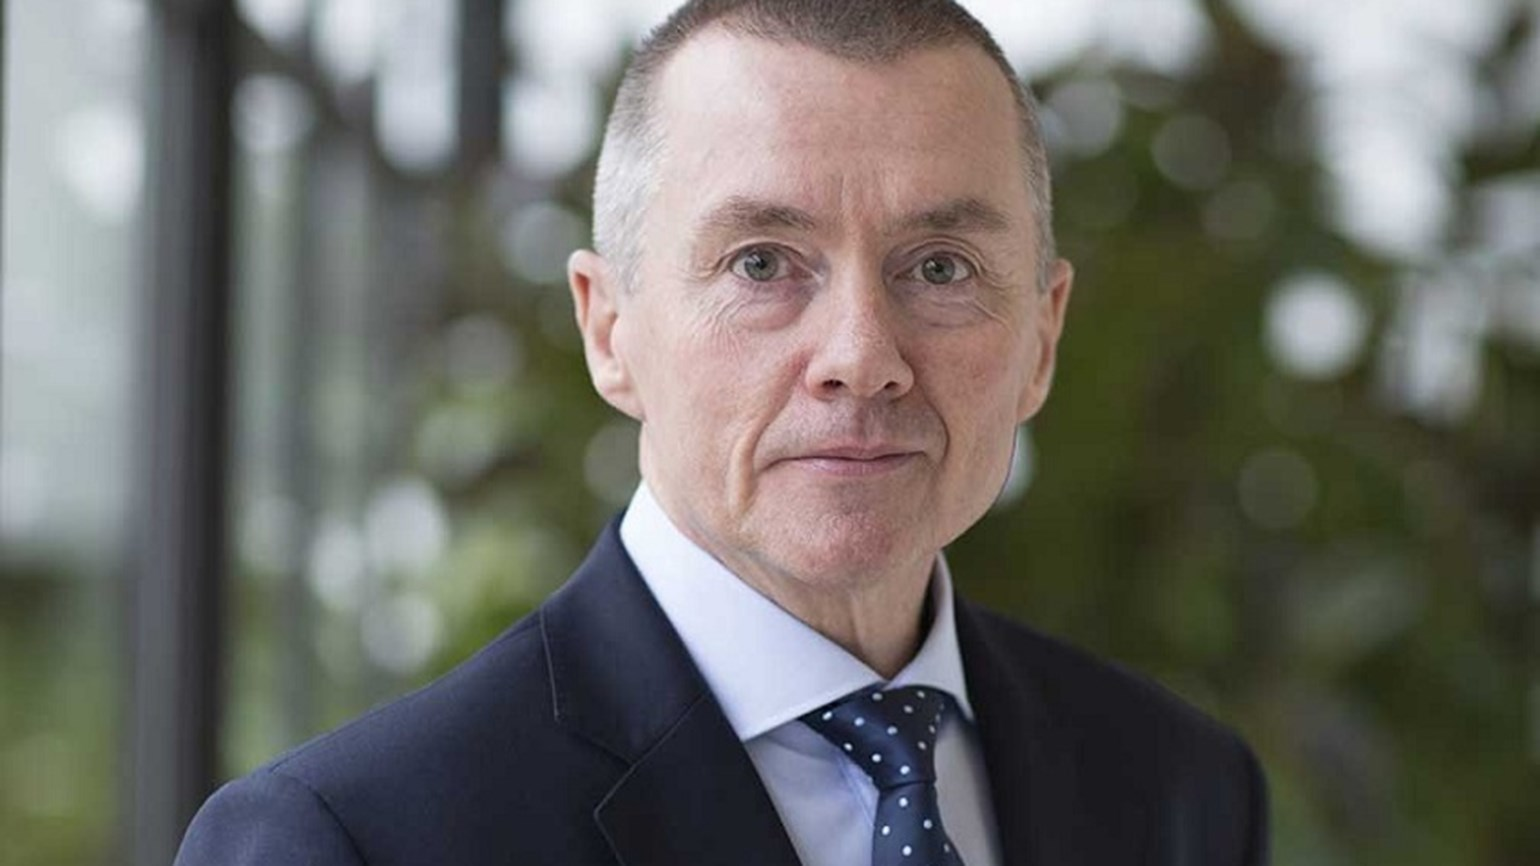 Willie Walsh to join CarTrawler after IAG departure